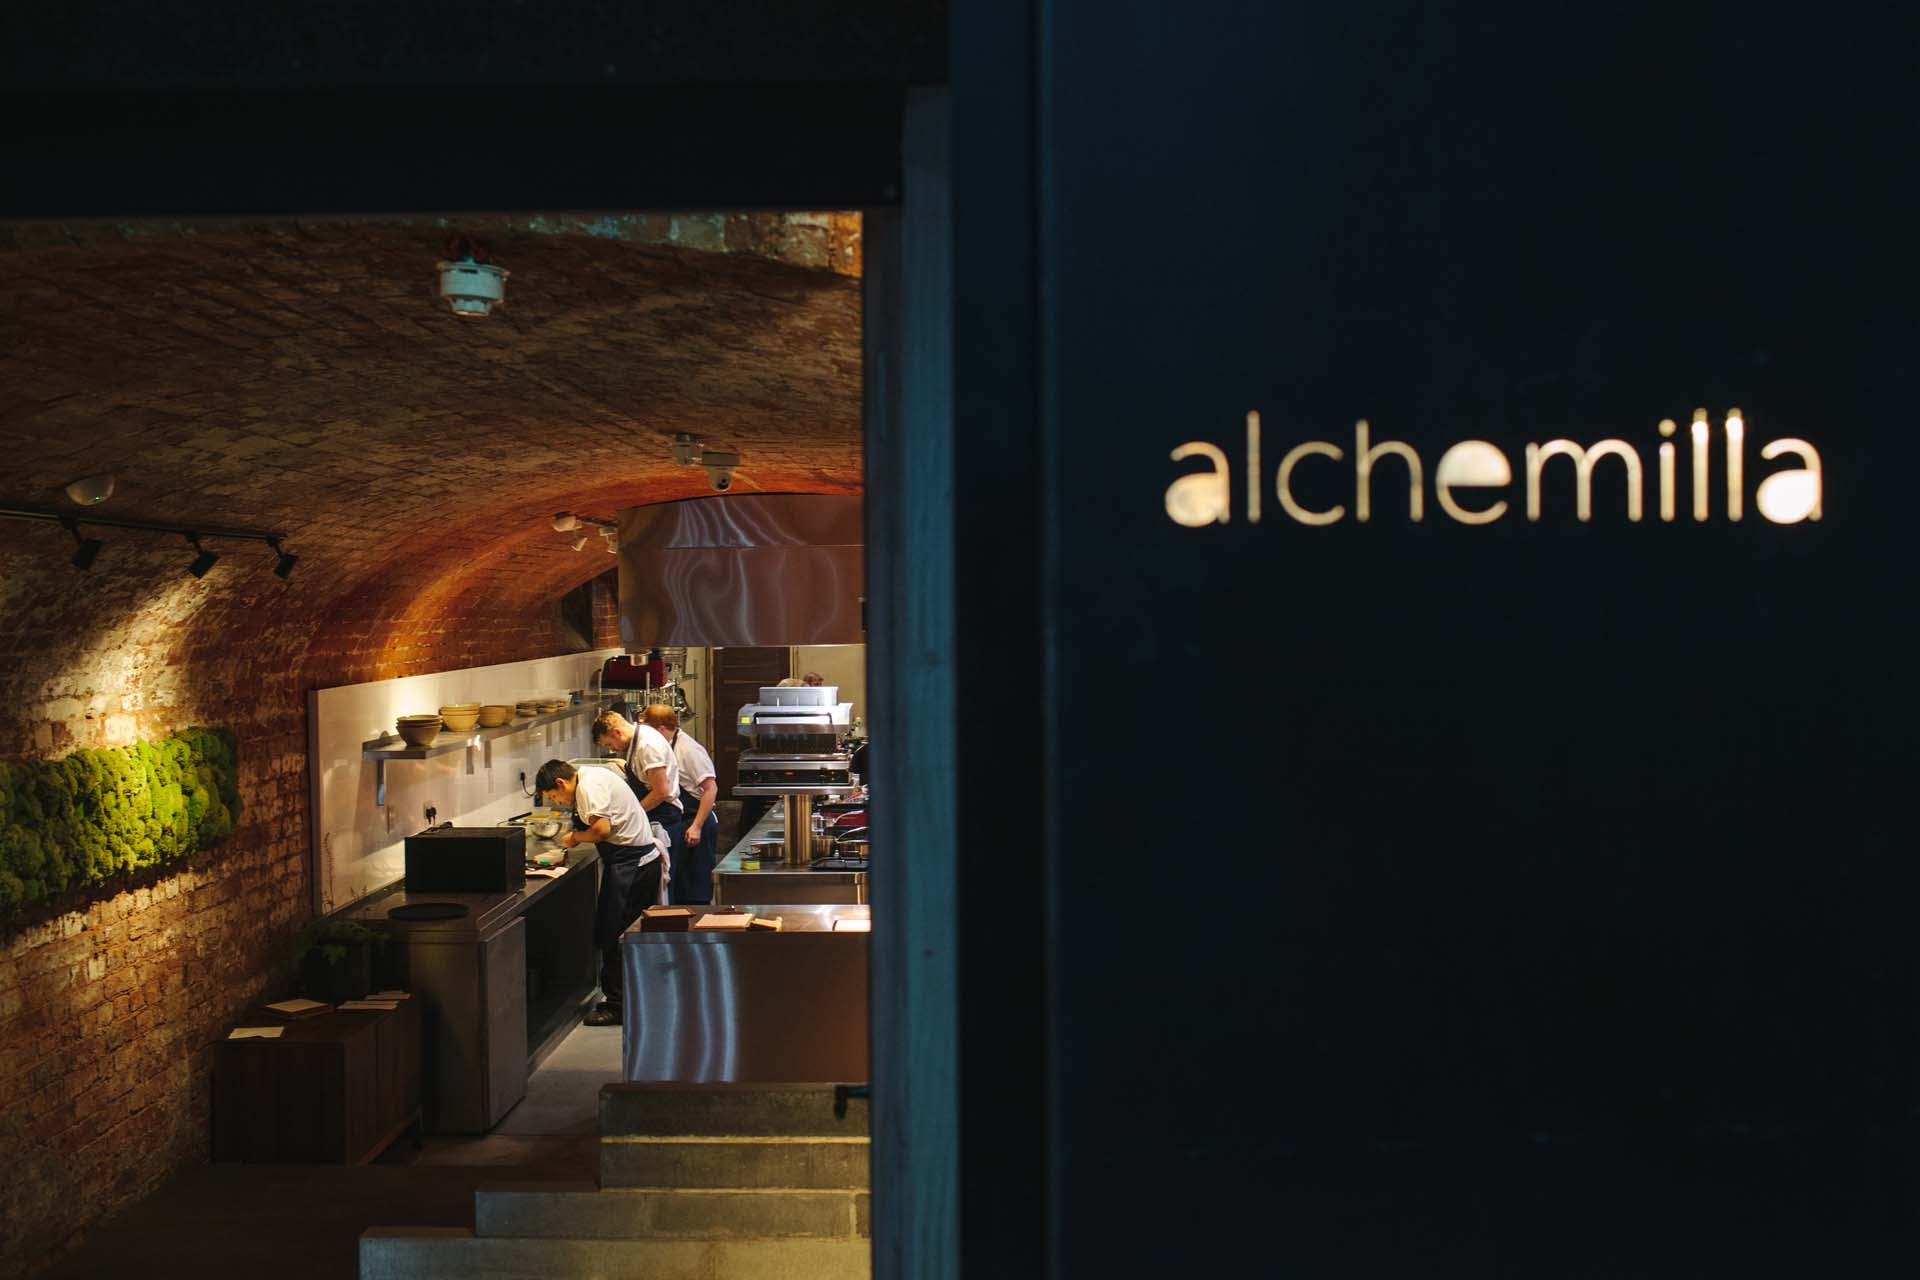 Accordingly I We Agree To Release Alchemilla And Its Employees From Any Criminal Proceedings Civil All Claims For Damage